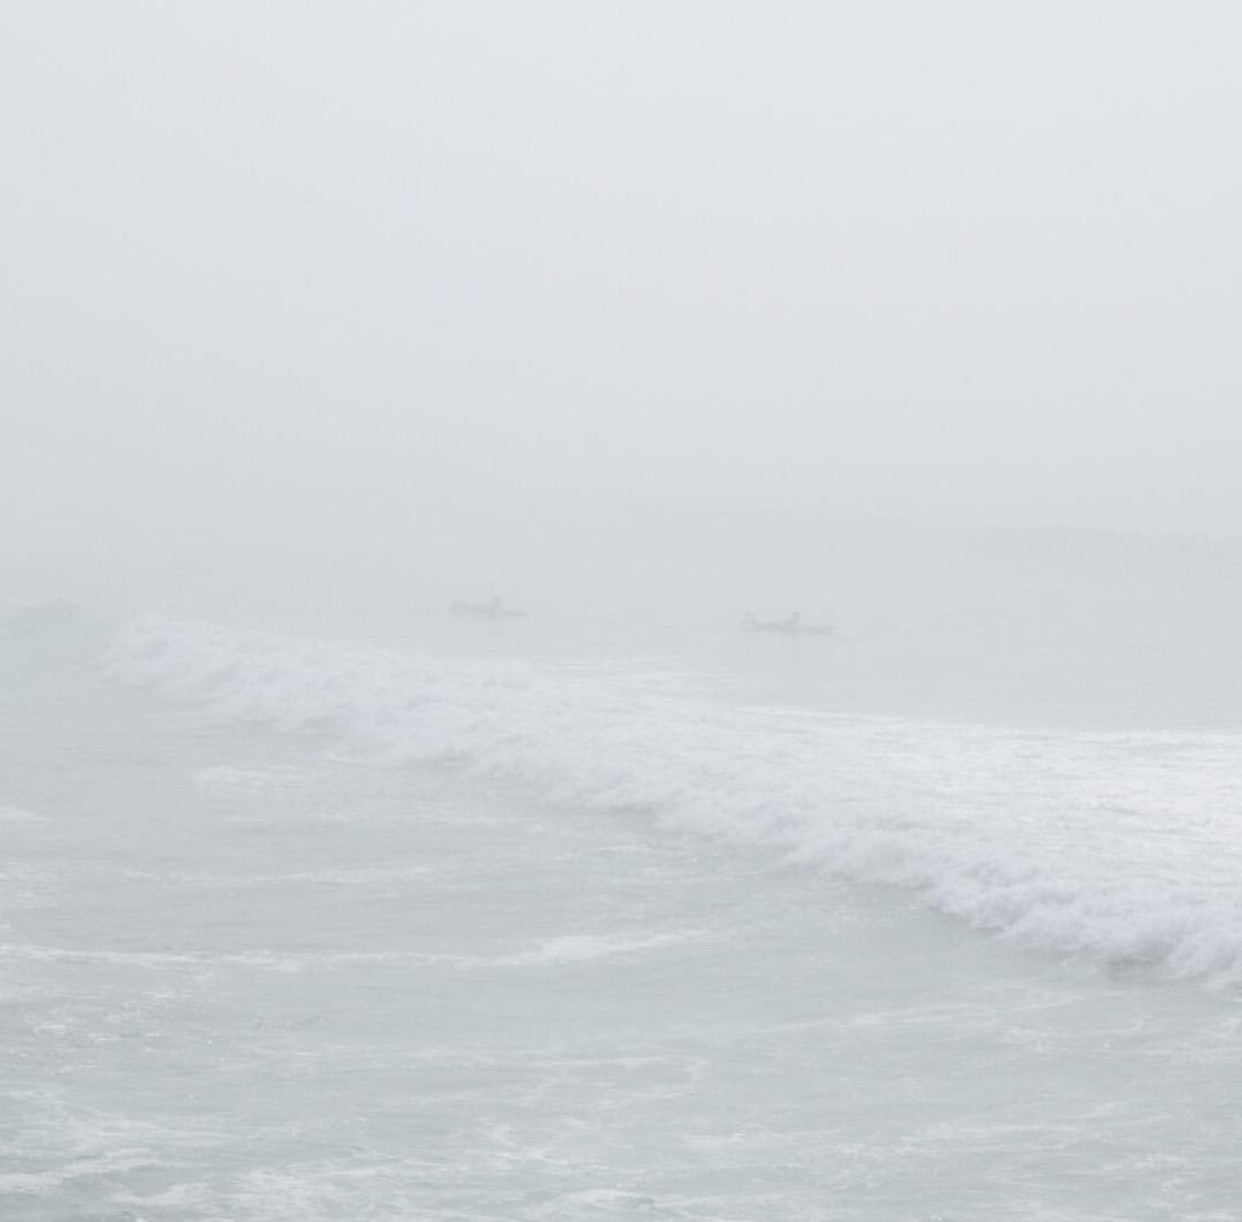 Sea mist takes the visibility down to Zero. If you look closely at this pic you can just make out two RNLI lifeguards on surfboards searching for swimmers.